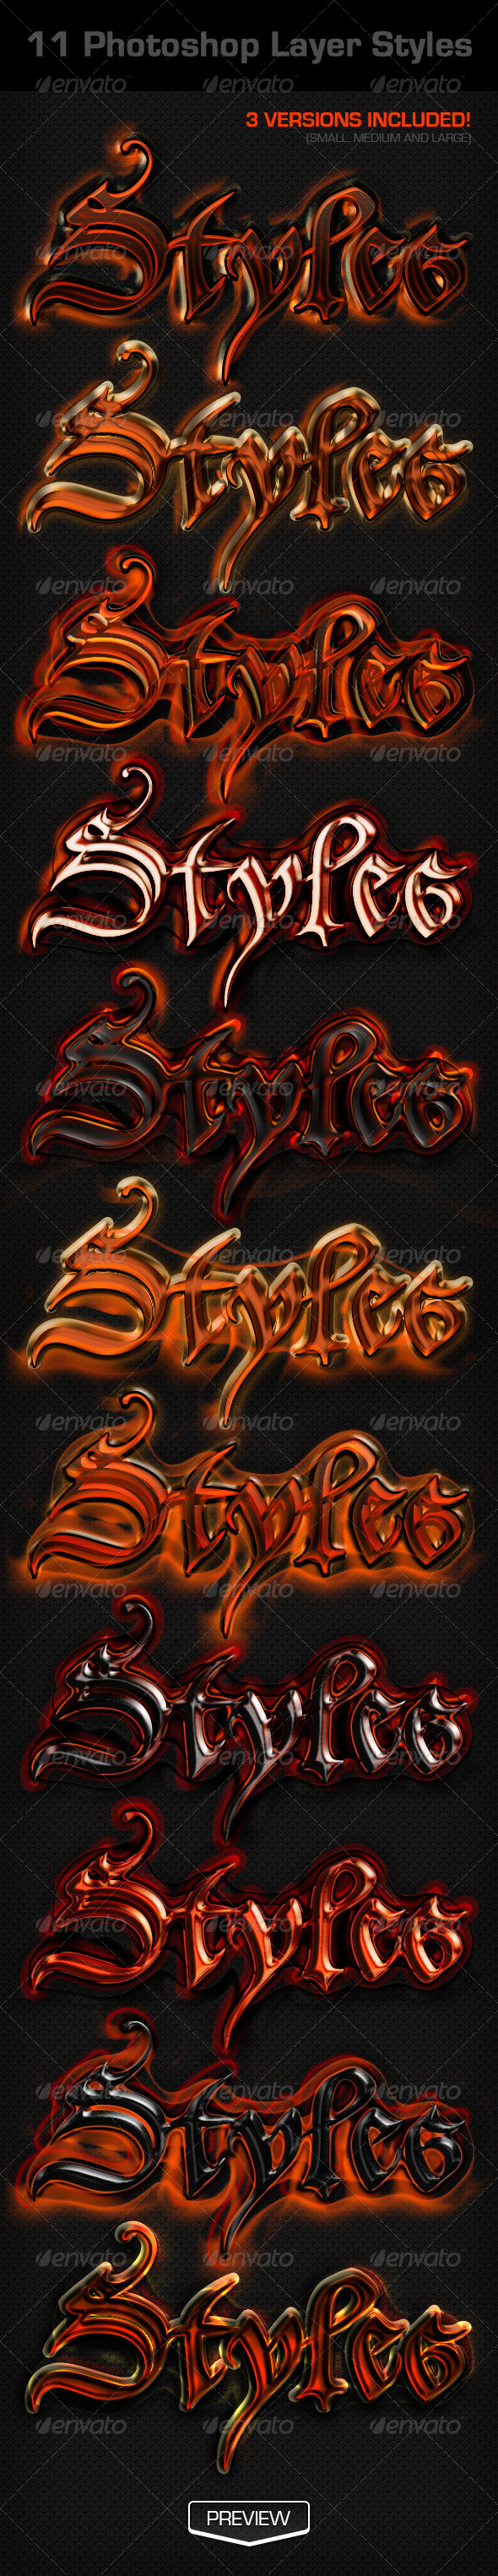 GraphicRiver 11 Photoshop Layer Styles 4914240